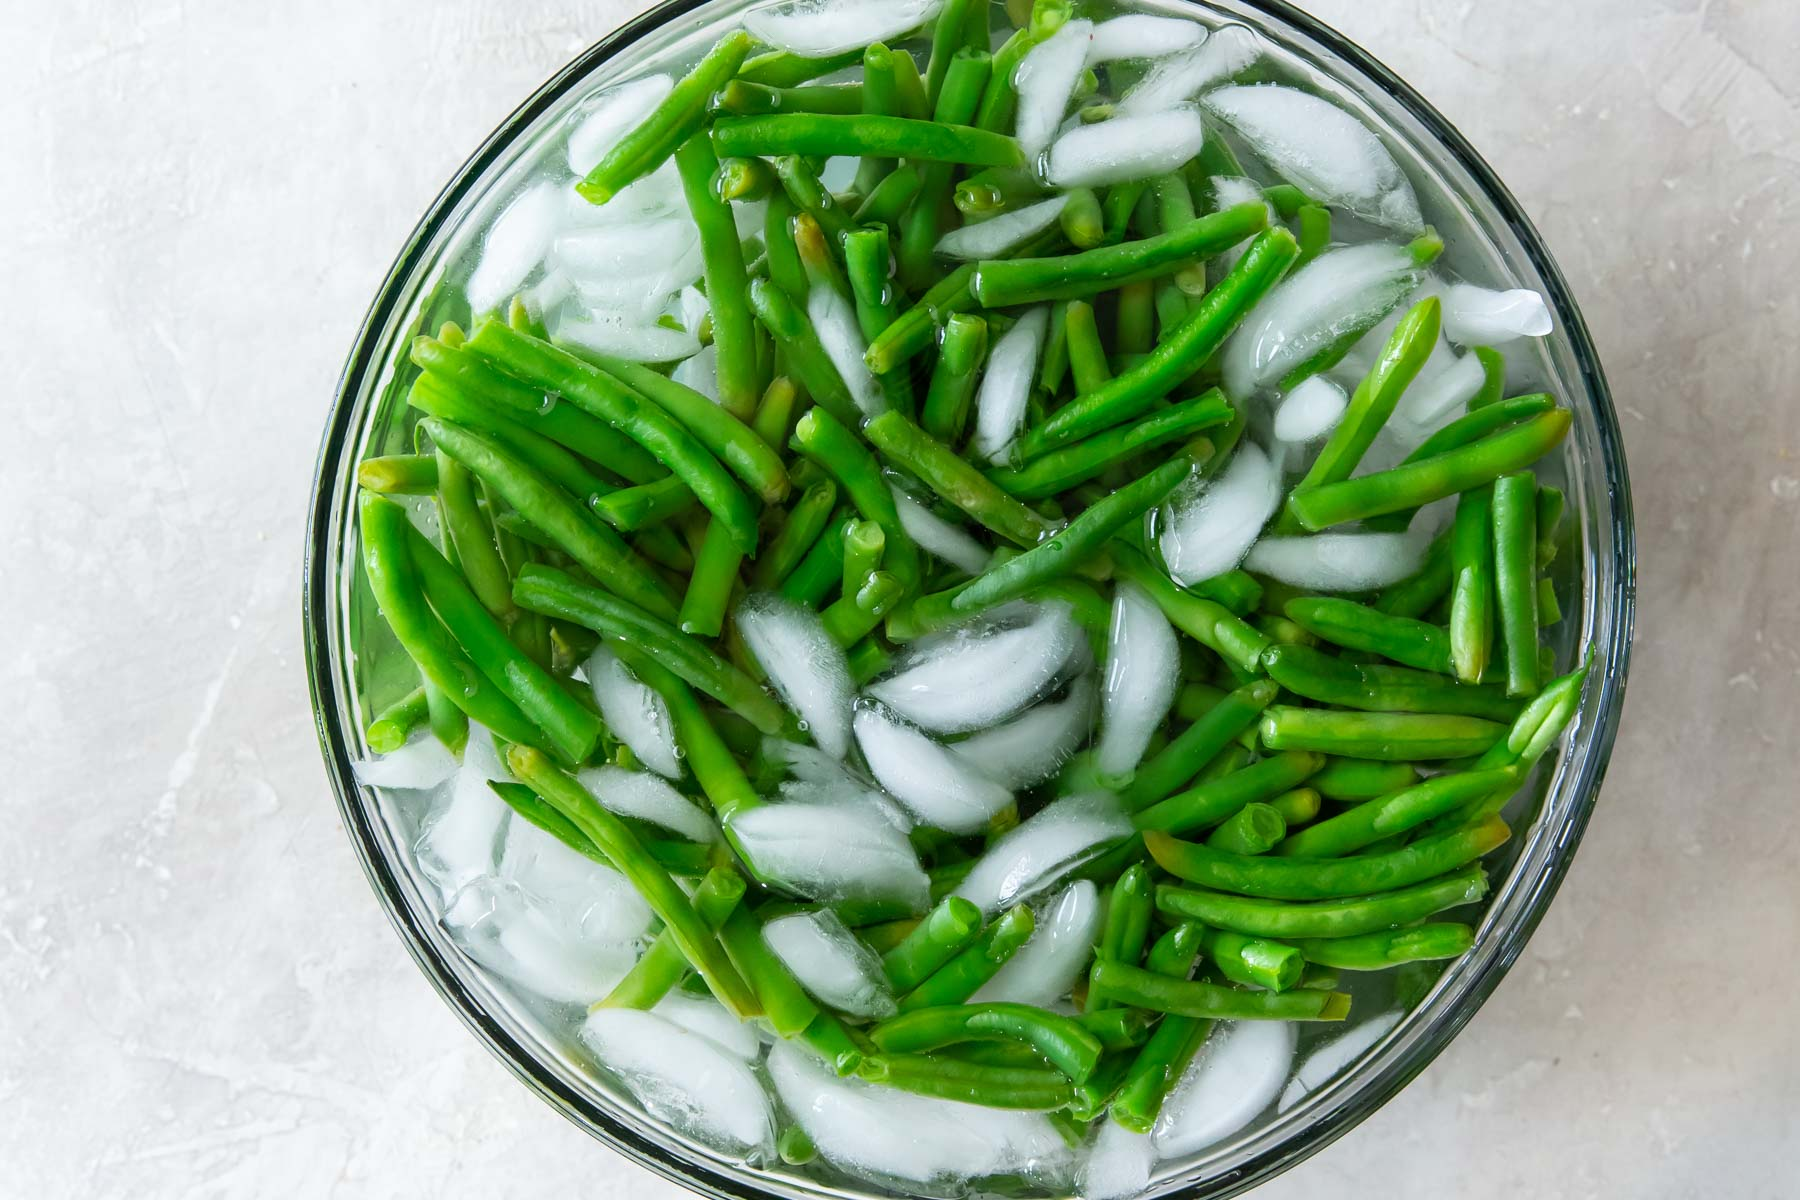 green beans in bowl of ice water